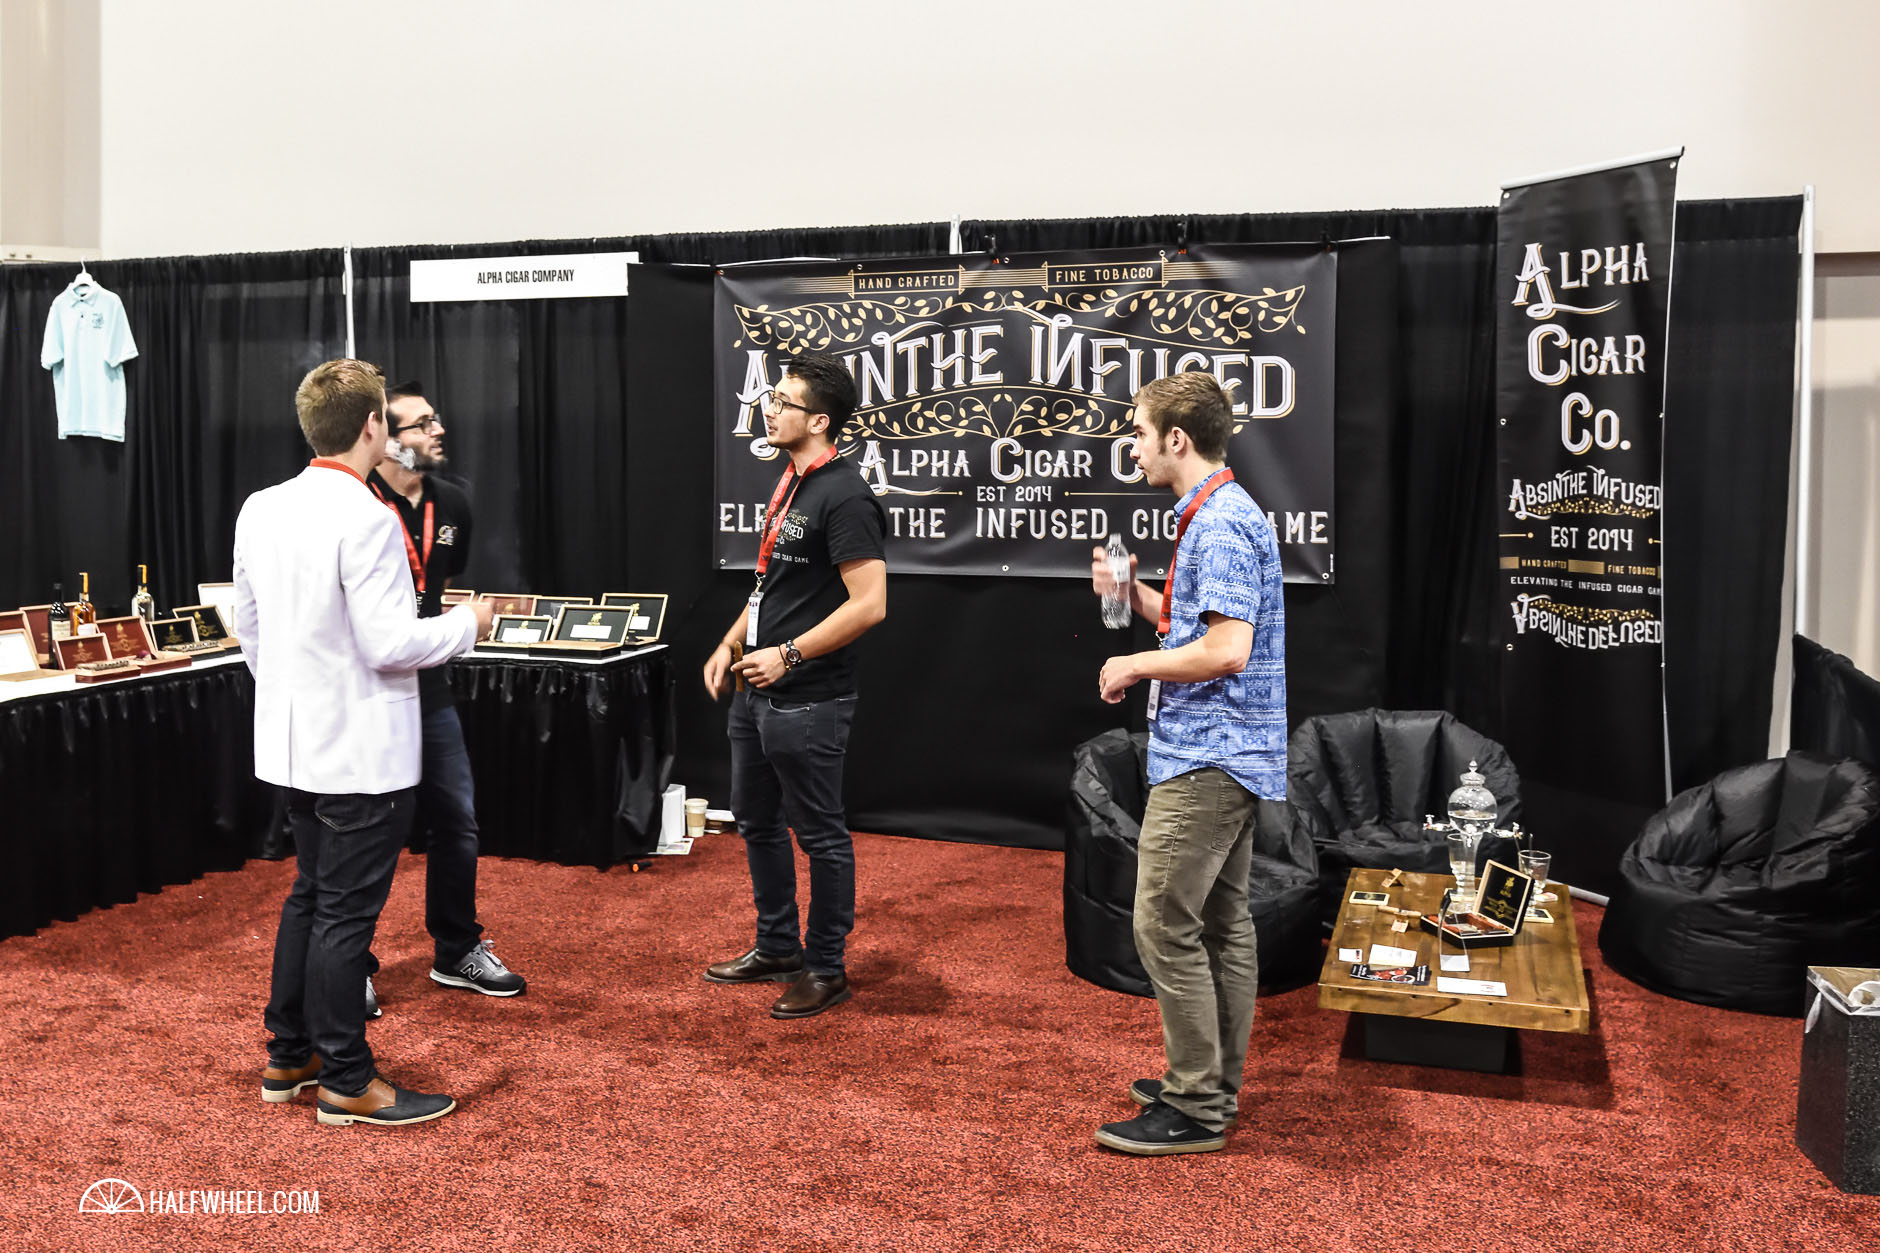 Alpha Cigar Company booth IPCPR 2016